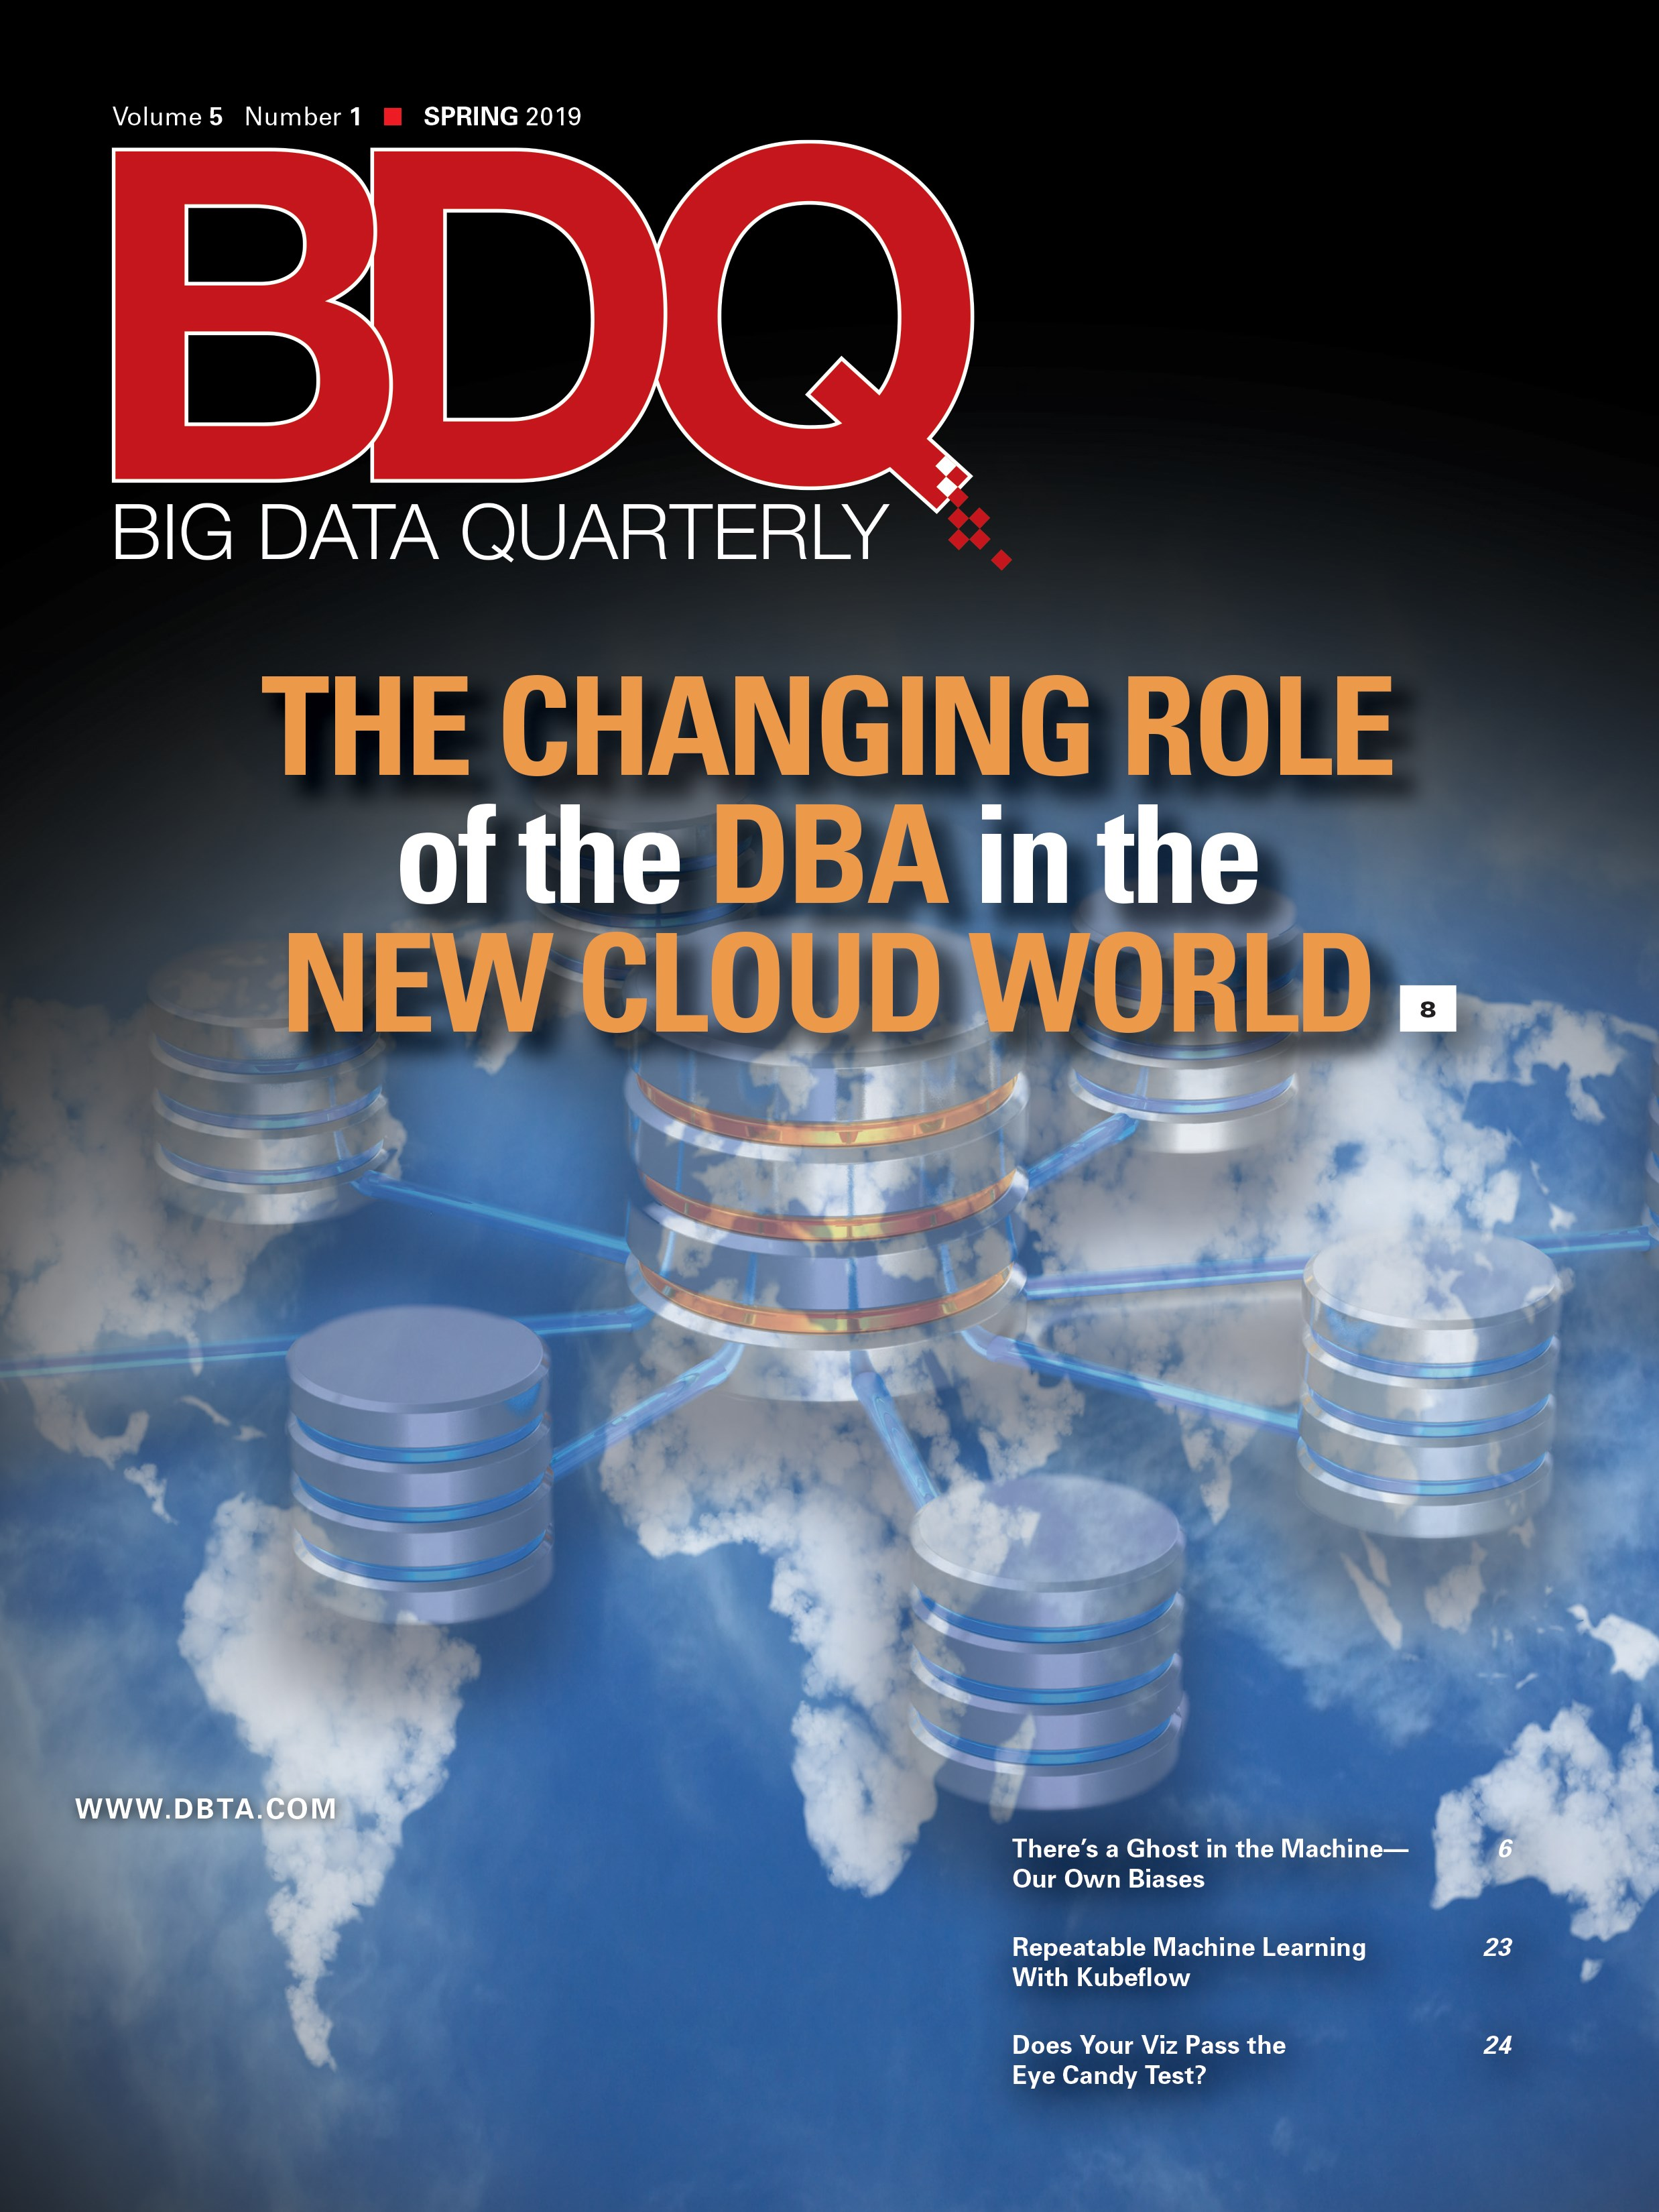 Big Data Quarterly: Spring 2019 Issue